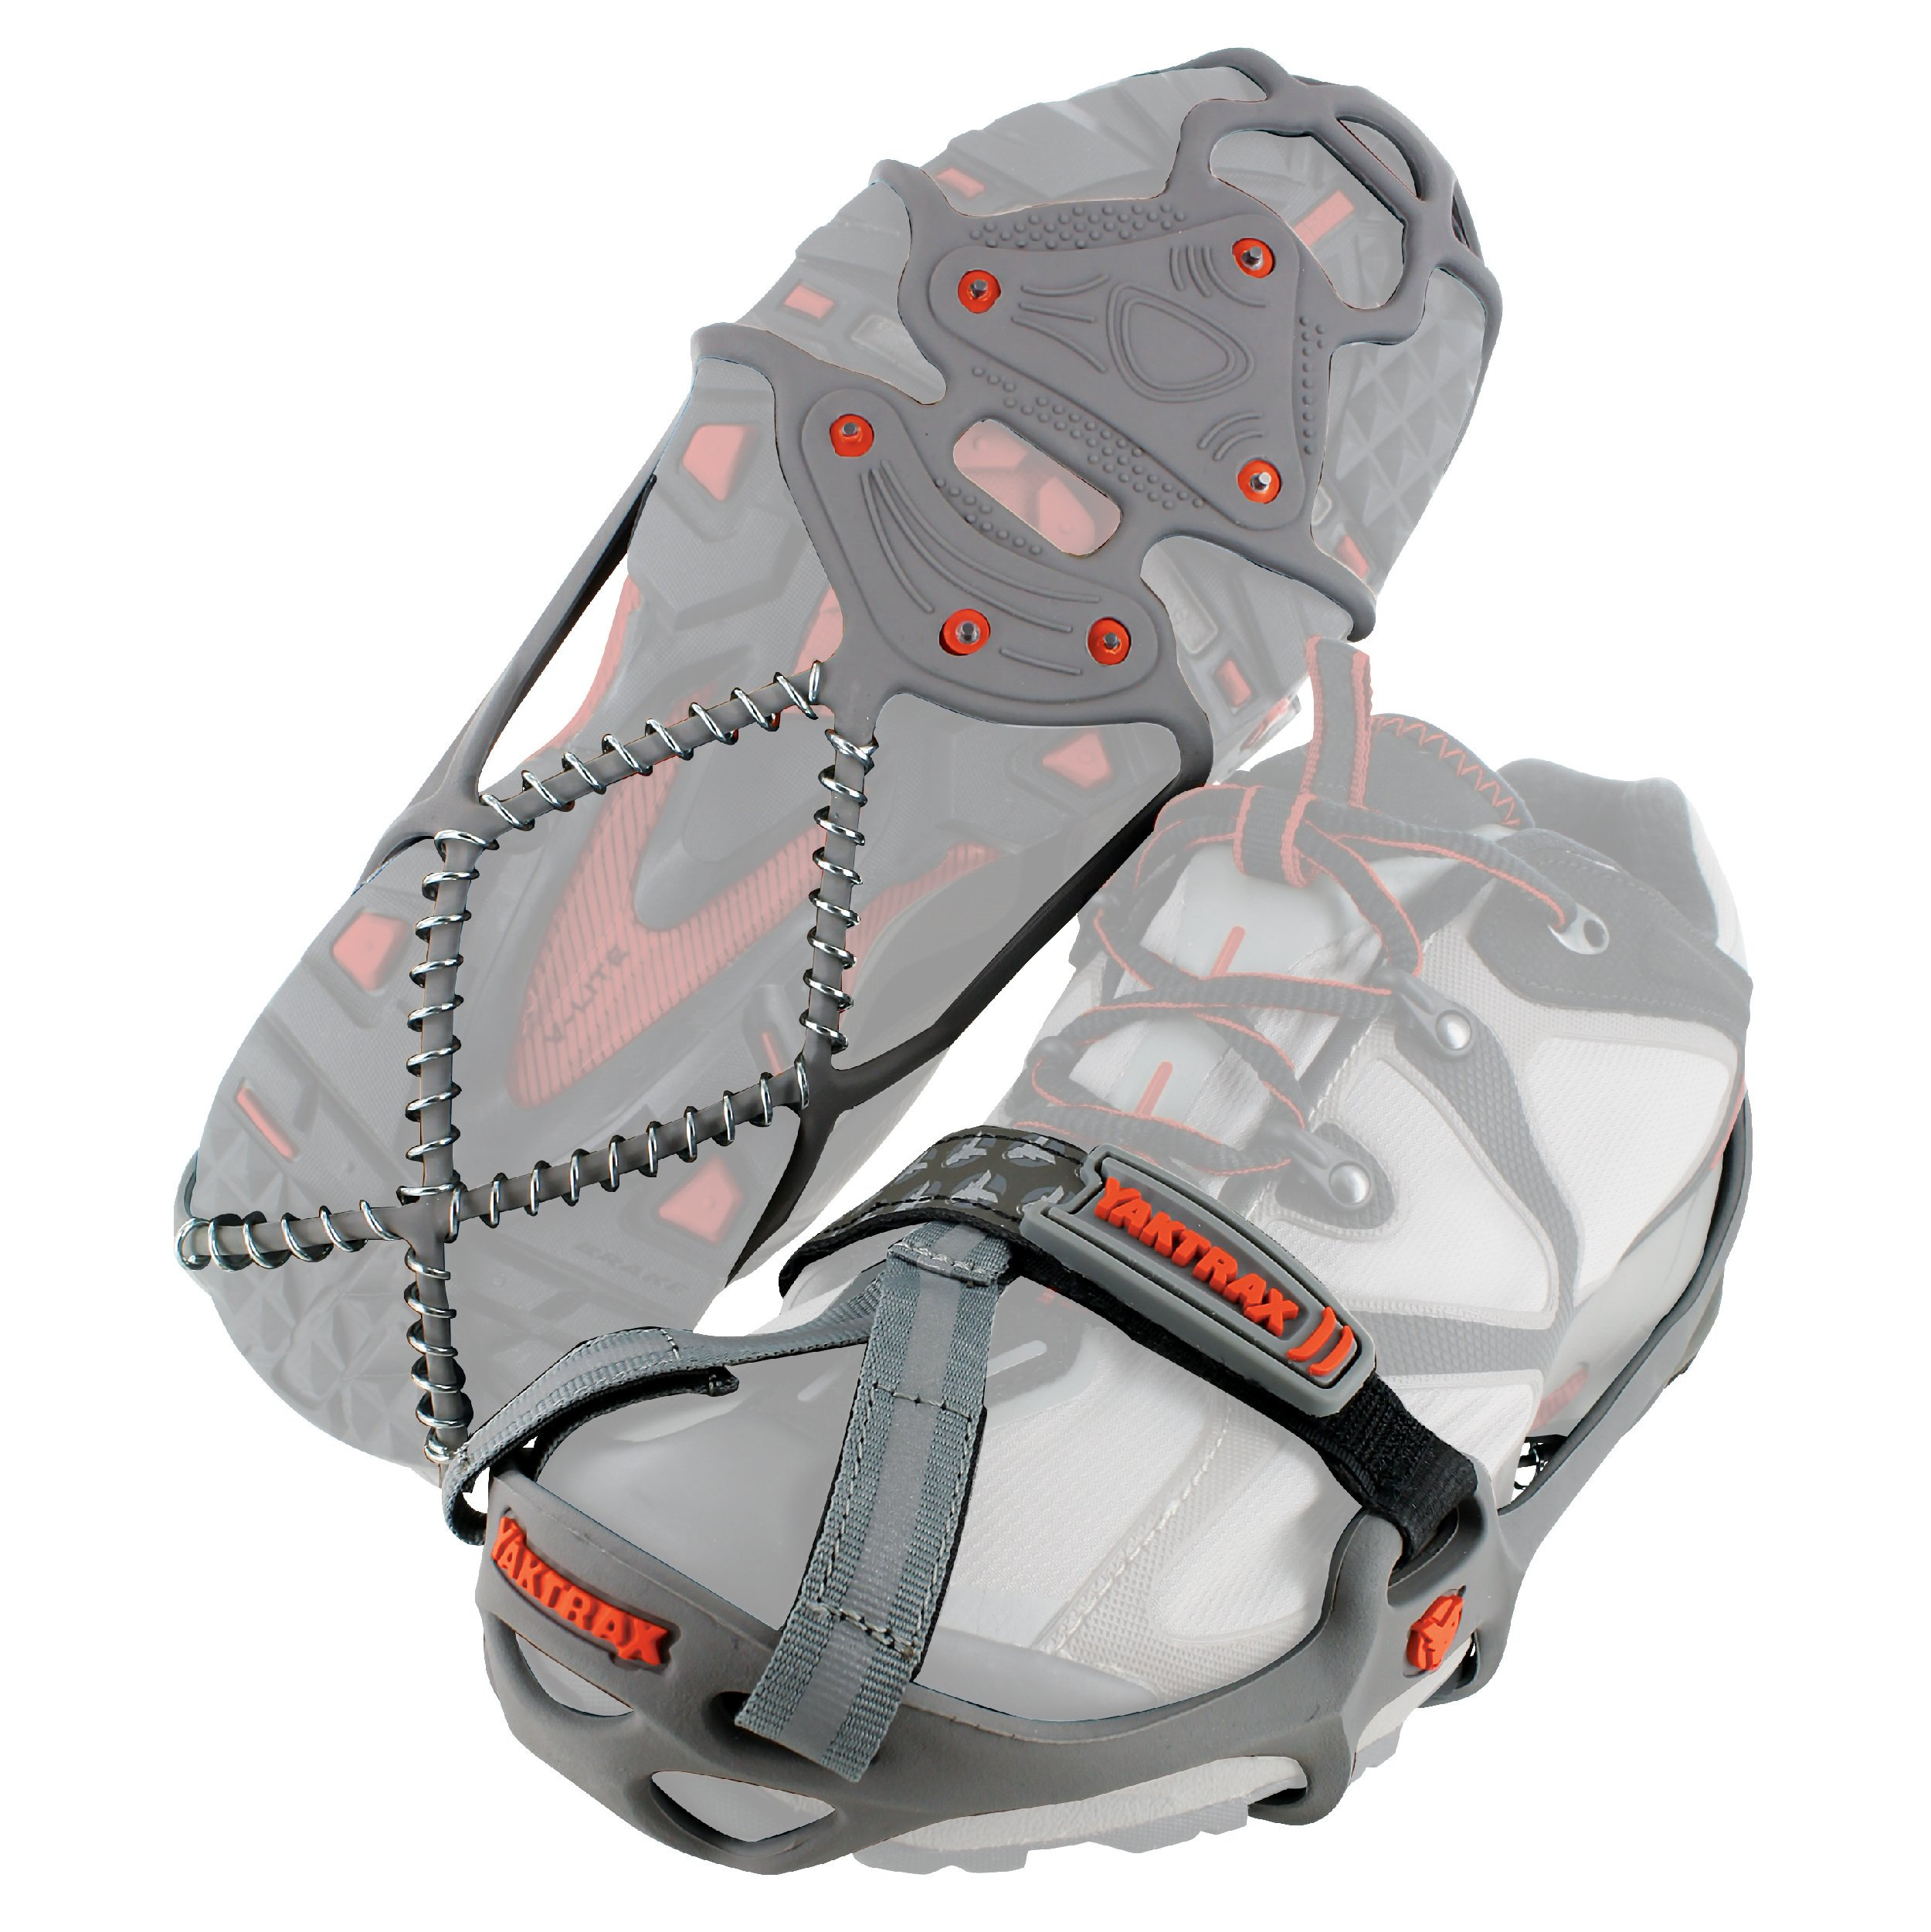 Yaktrax Run Traction Cleats for Running on Snow and Ice (1 Pair), Small